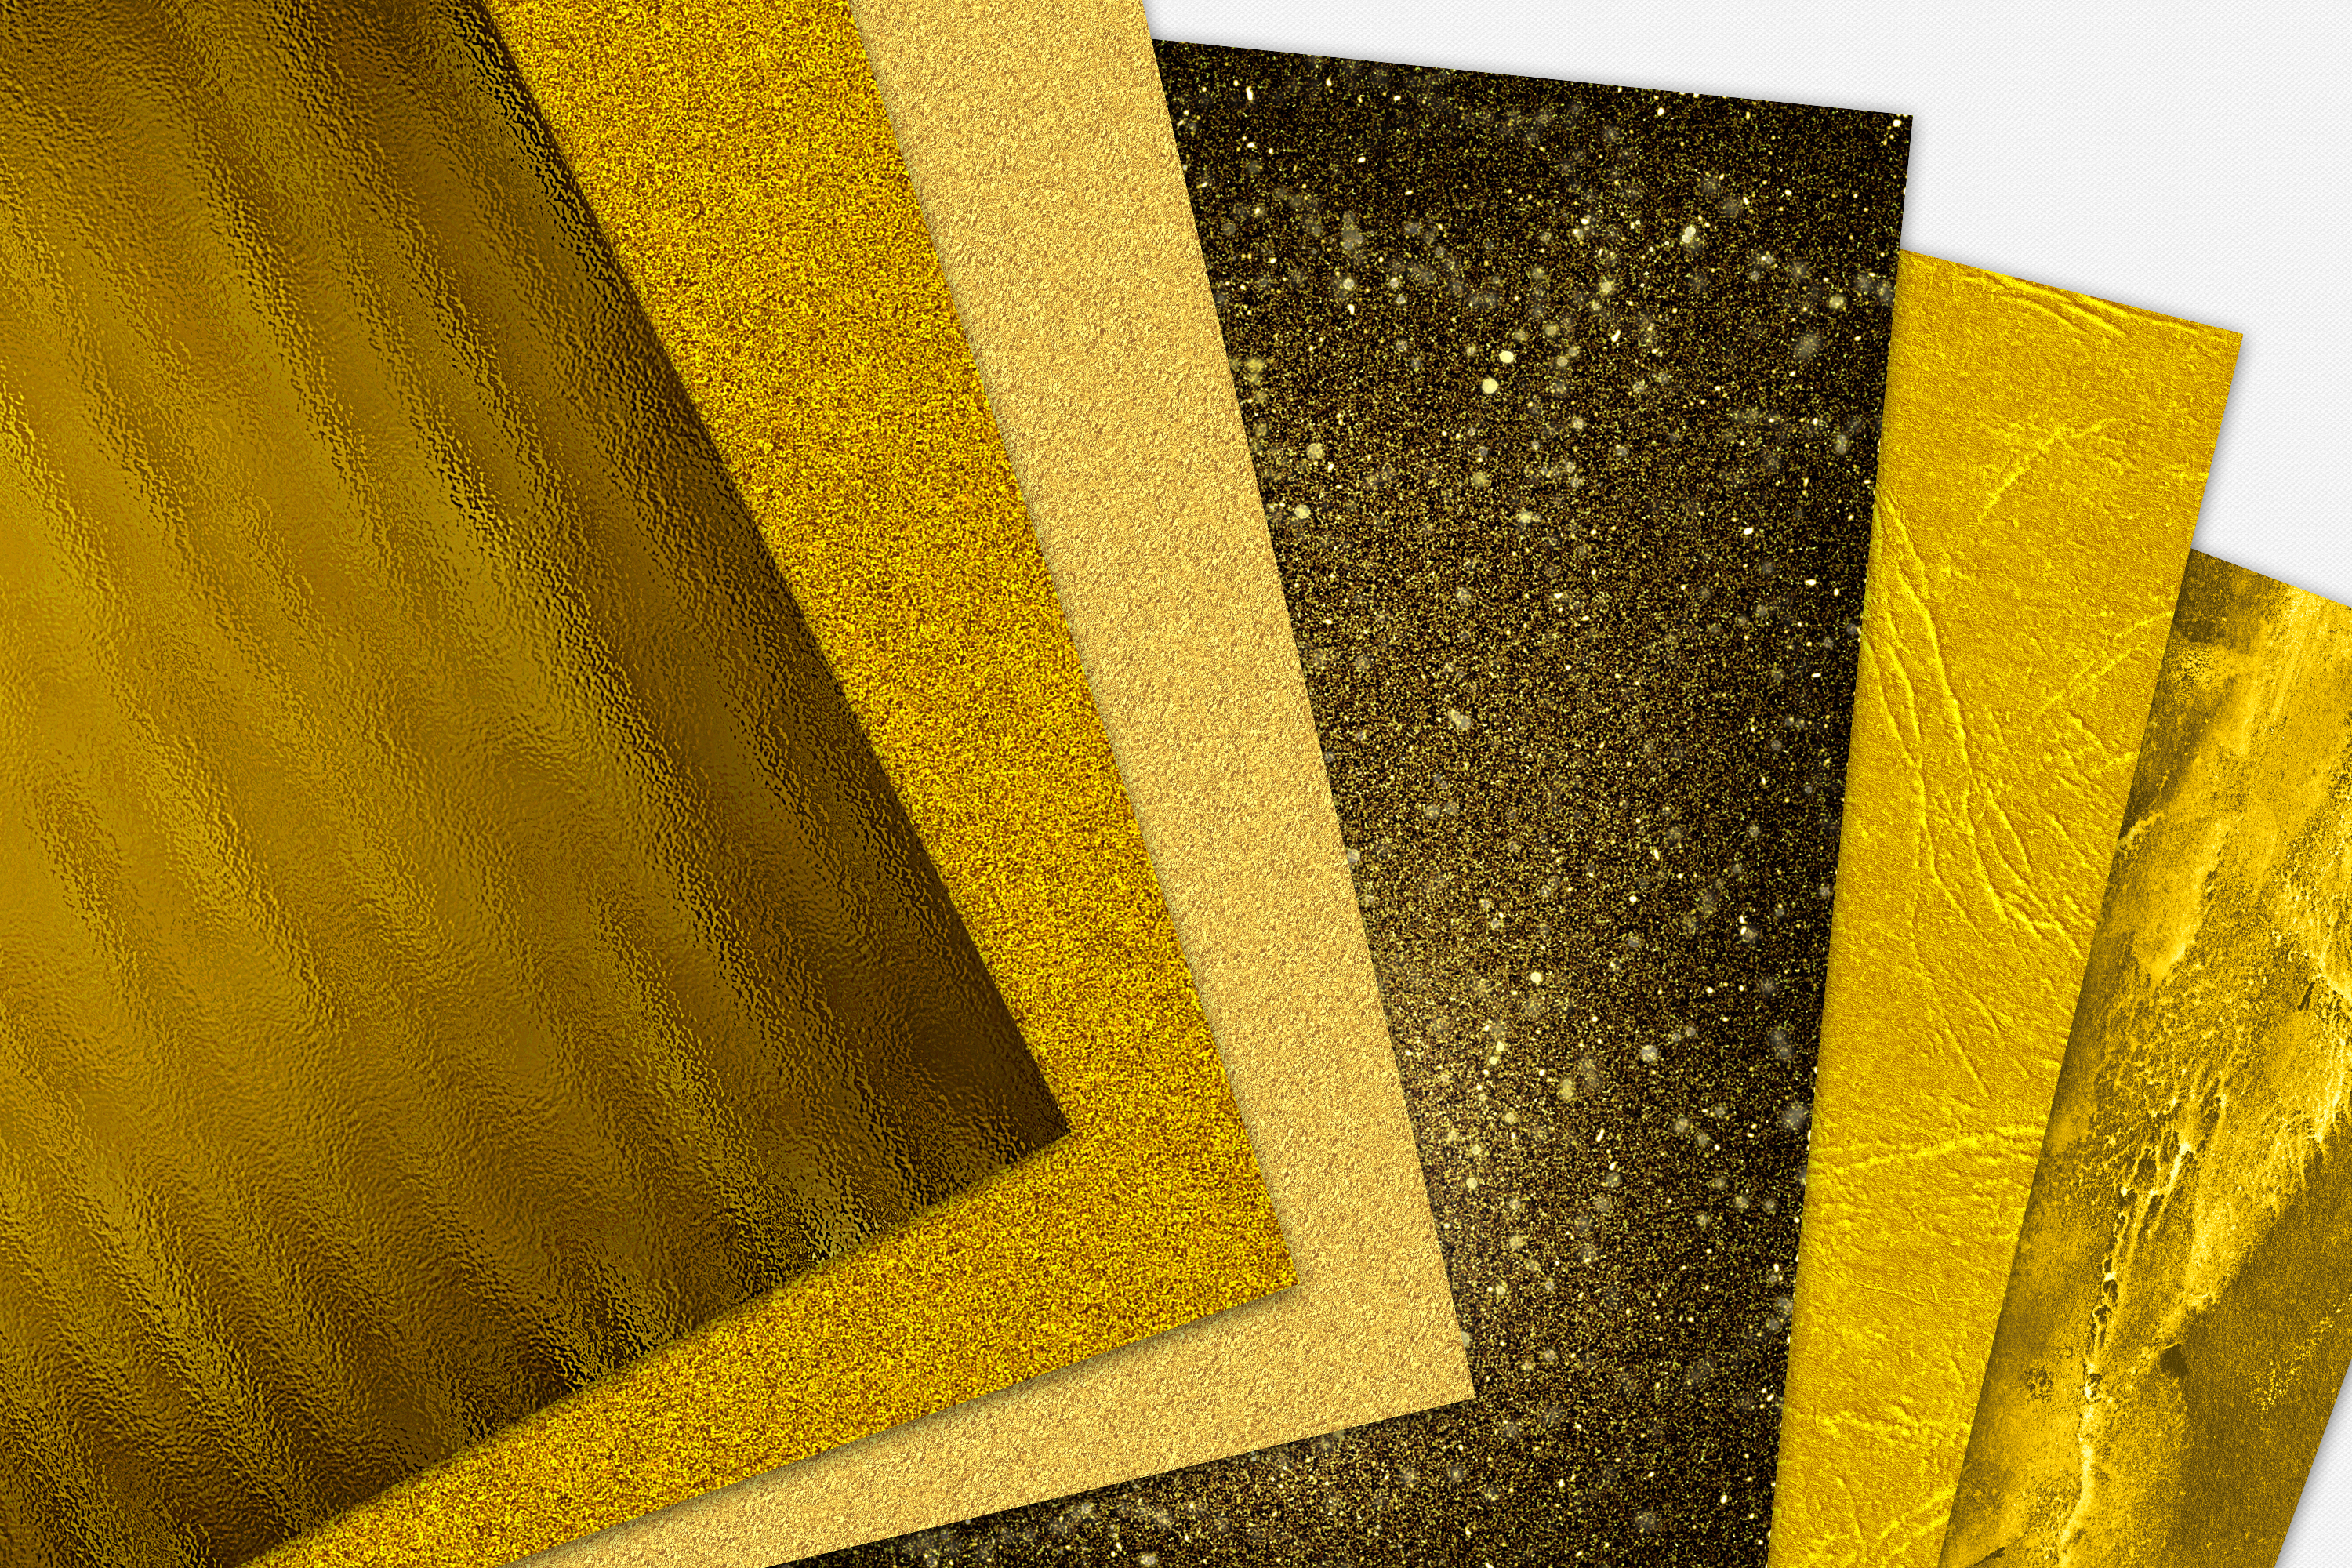 Gold Foil and Glitter Textures - Metallic Digital Papers example image 9